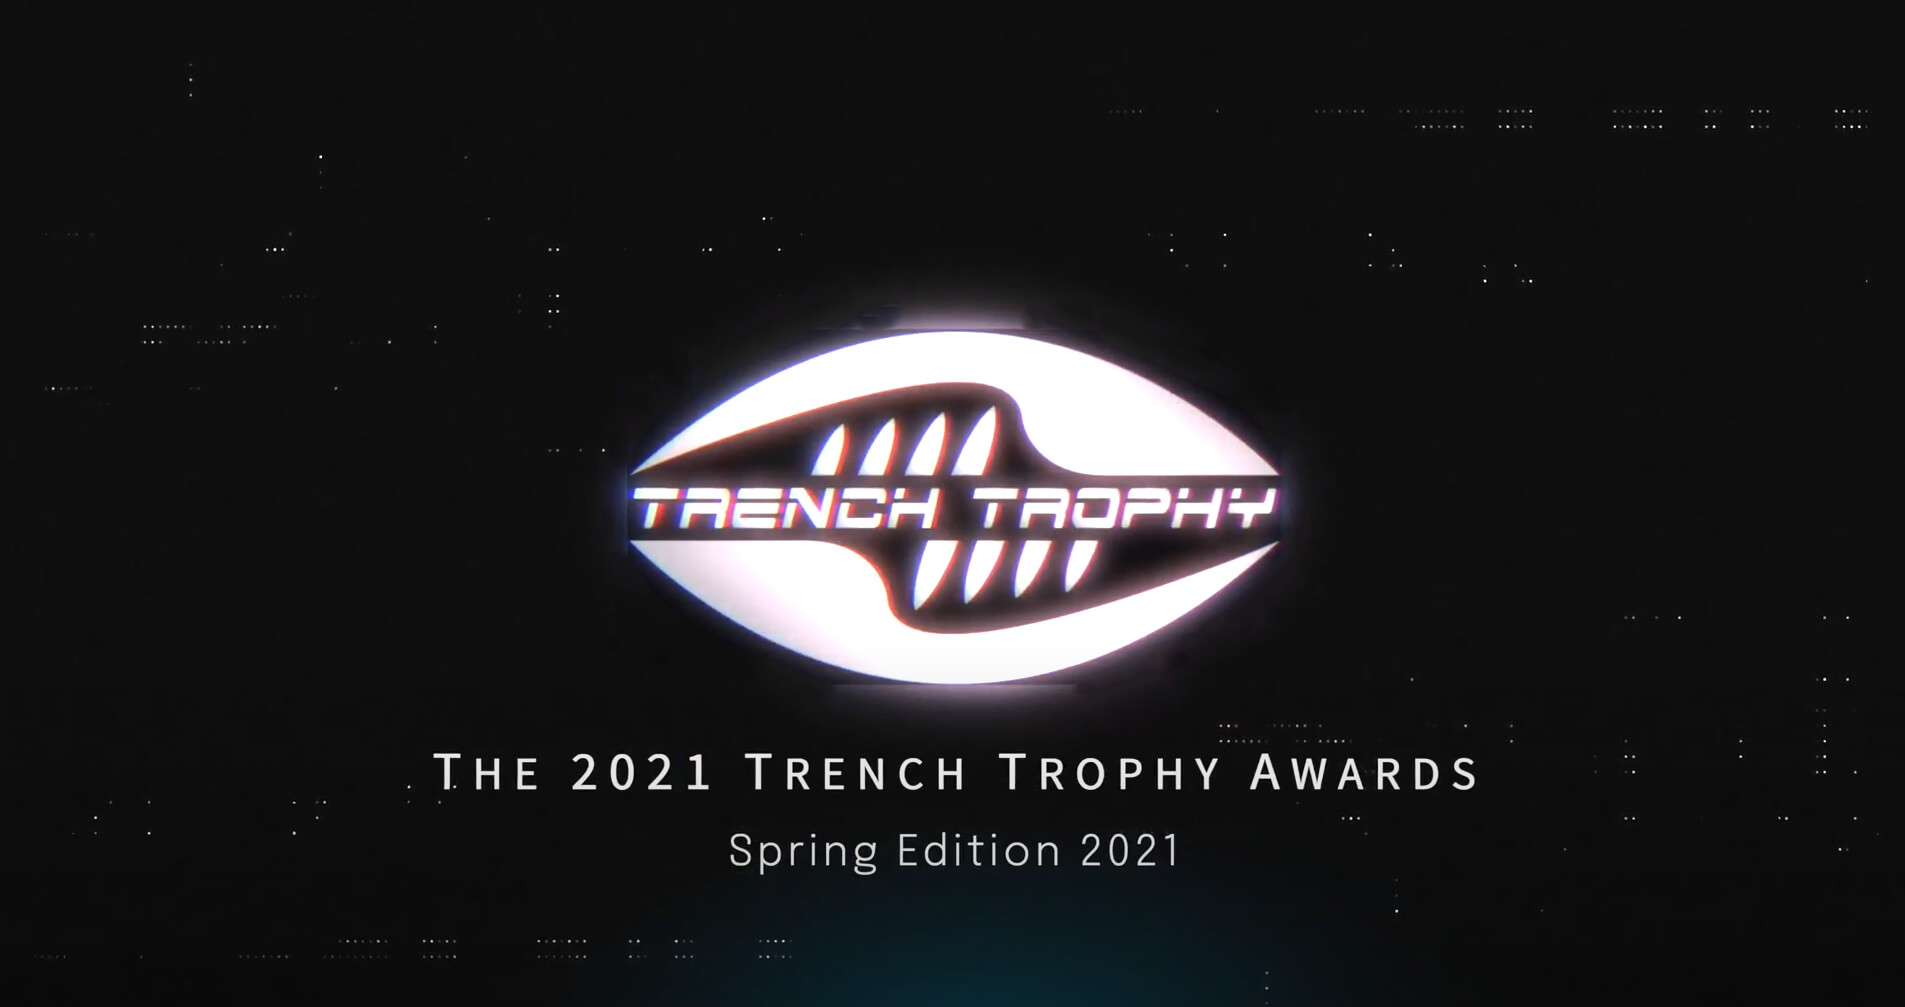 Trench Trophy Award Show